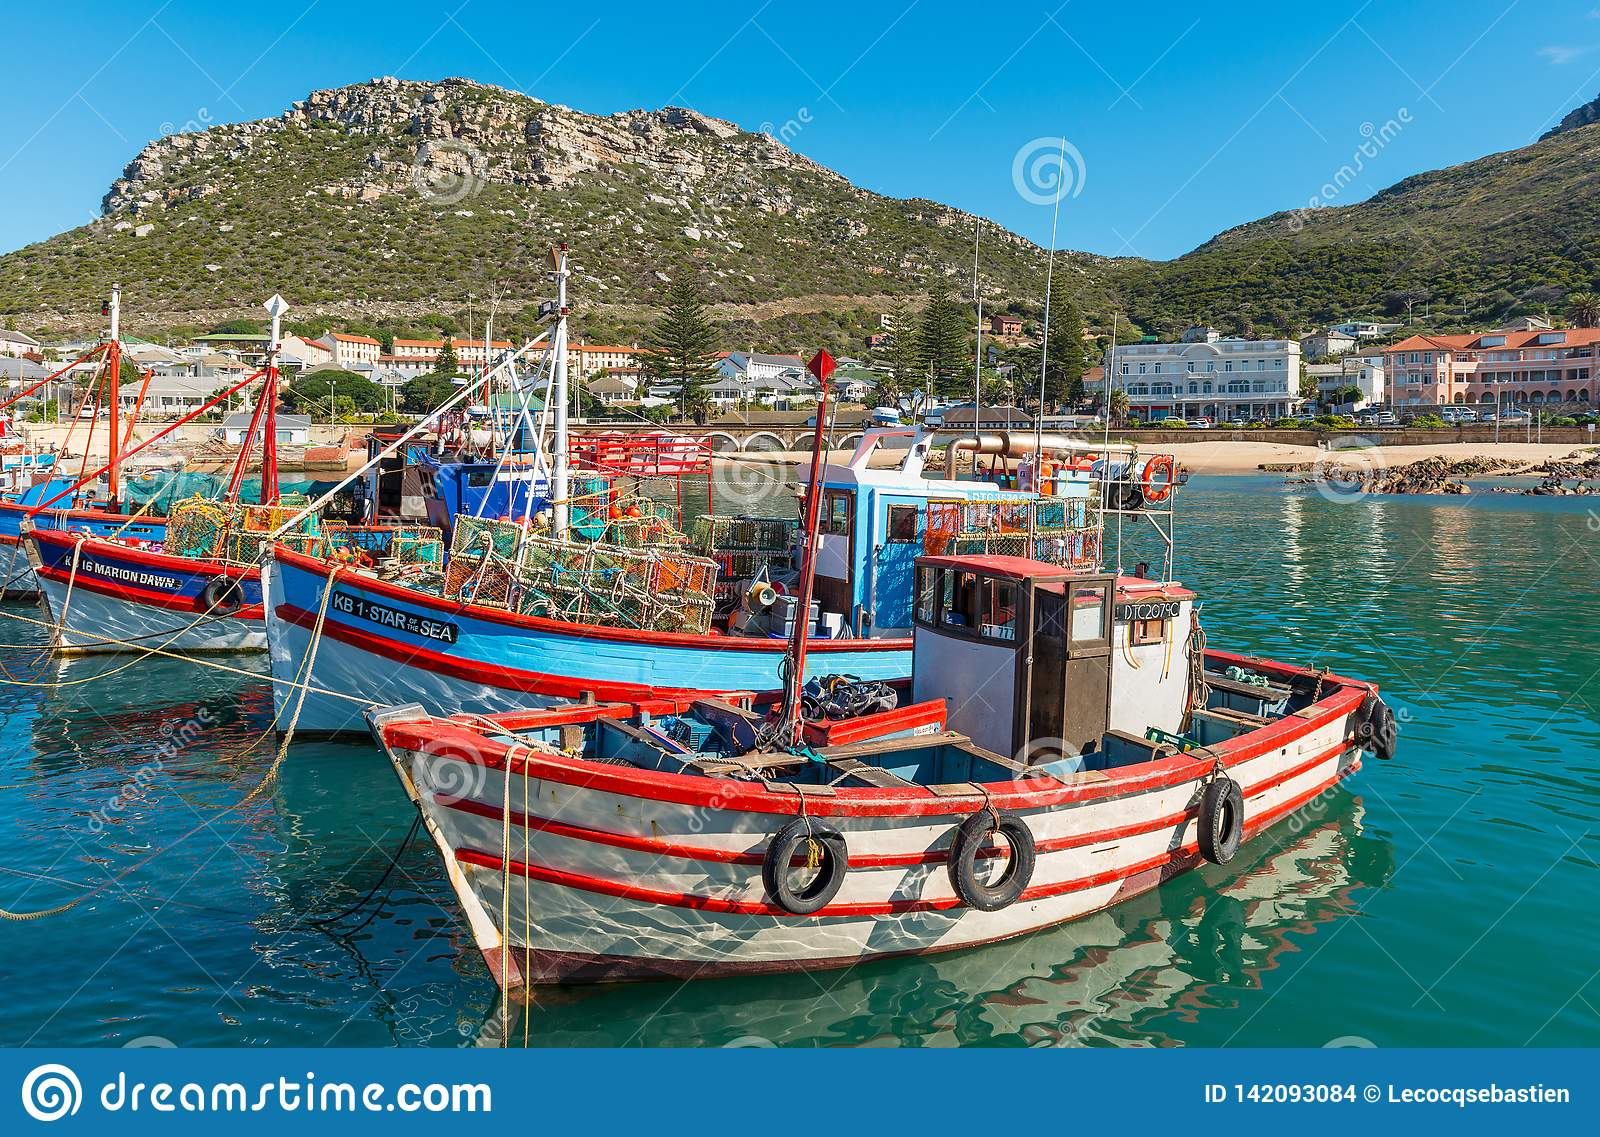 Fishing Boats in Kalk Bay, Cape Town, South Africa